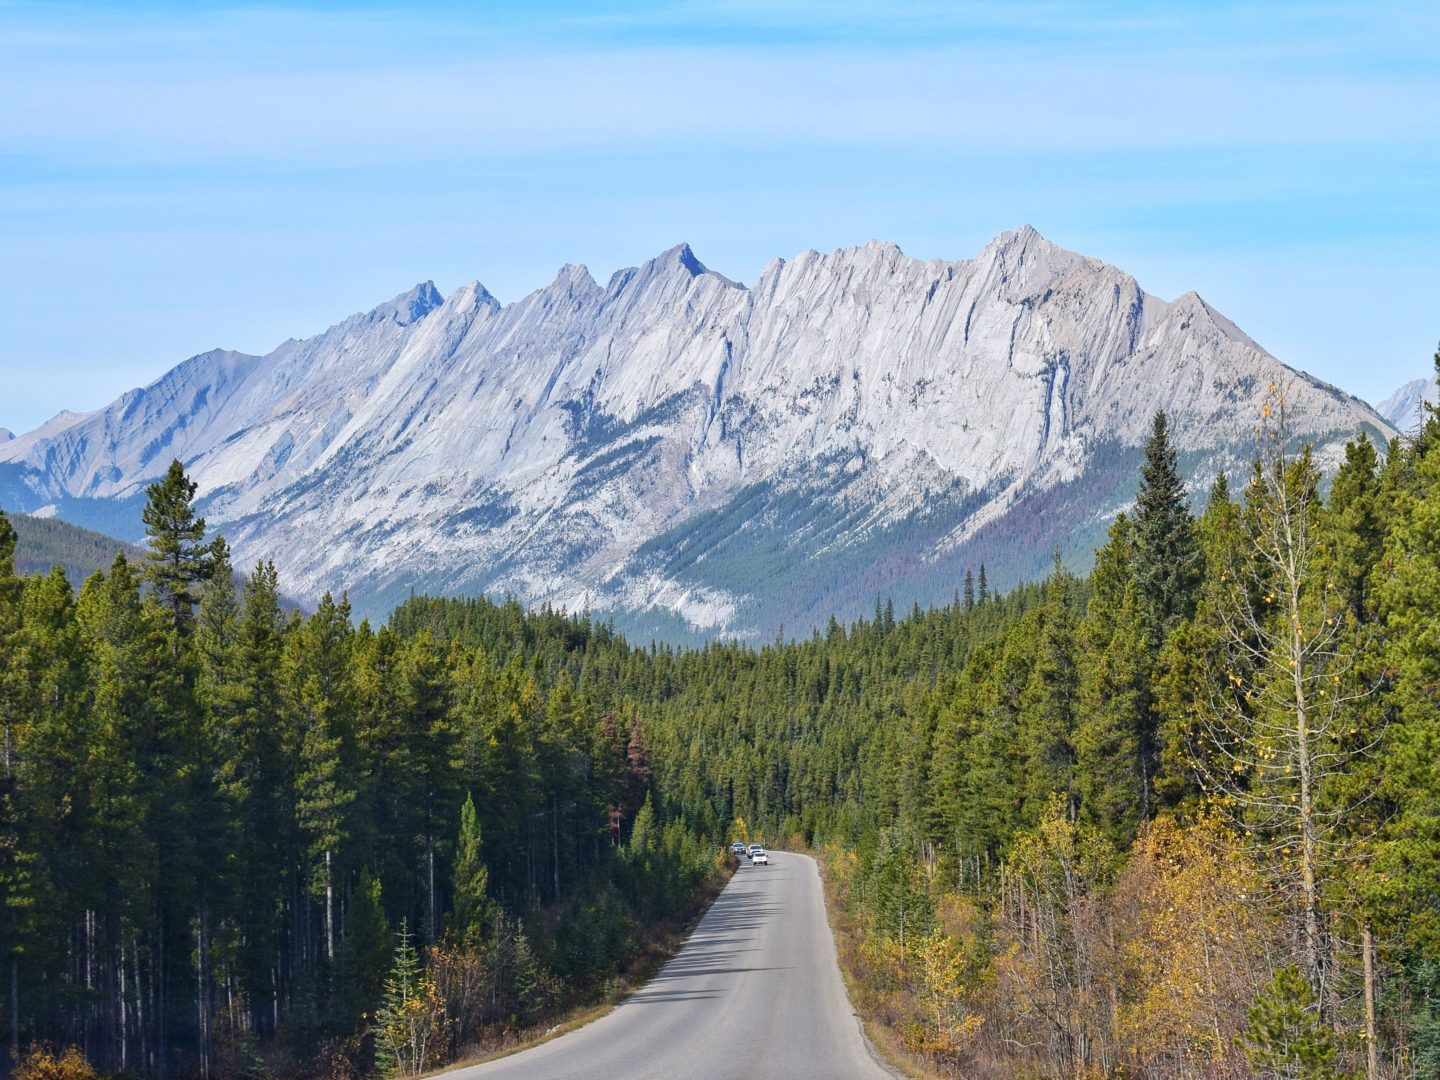 Part-time traveller on a roadtrip in Canada